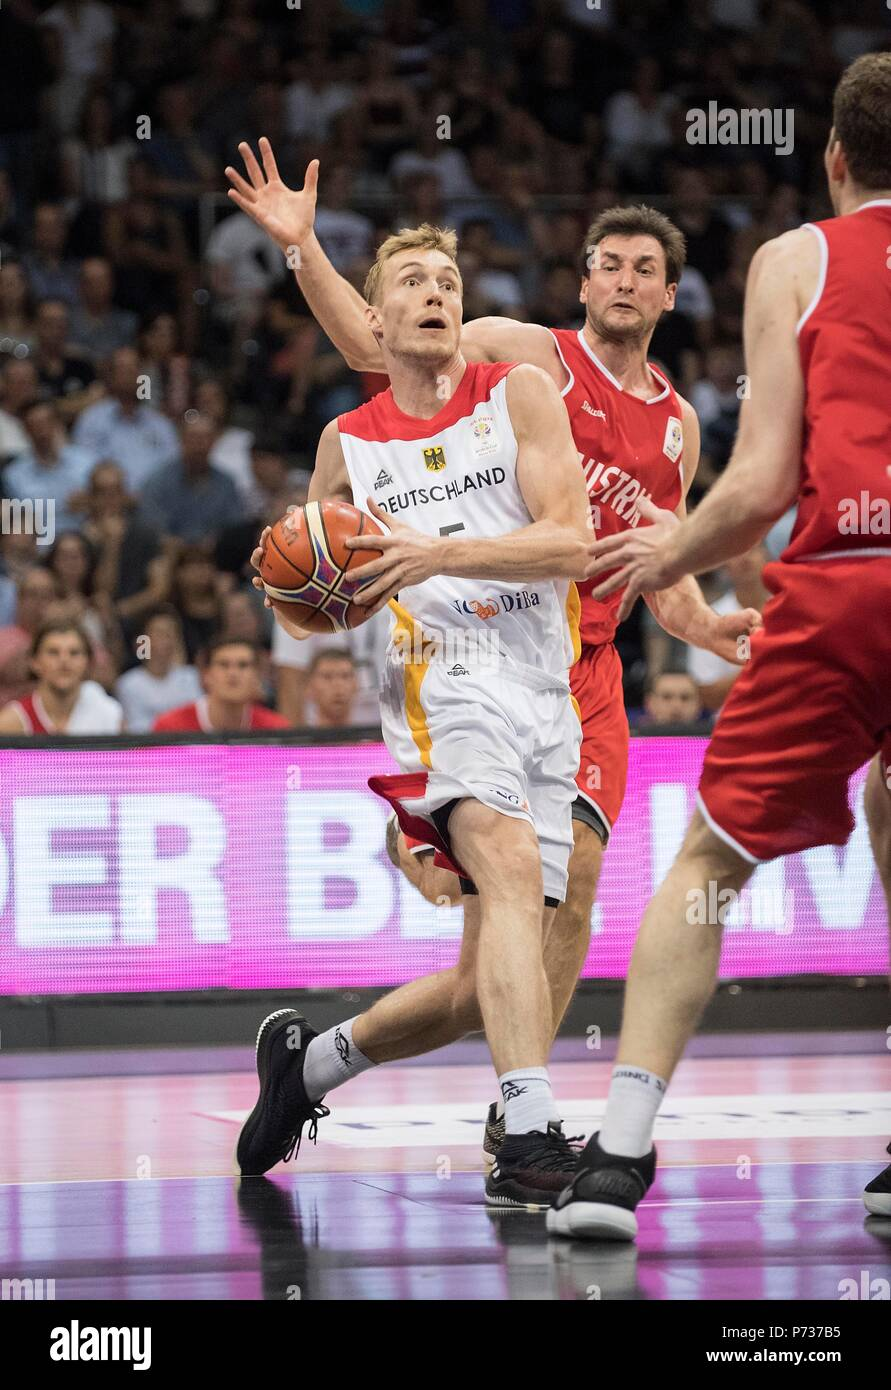 Brunswick Deutschland 29th June 2018 Niels Giffey Ger Action Basketball Wc Qualification Germany Ger Austria Aut 85 63 On 29 06 2018 In Braunschweig Germany Usage Worldwide Credit Dpa Alamy Live News Stock Photo Alamy